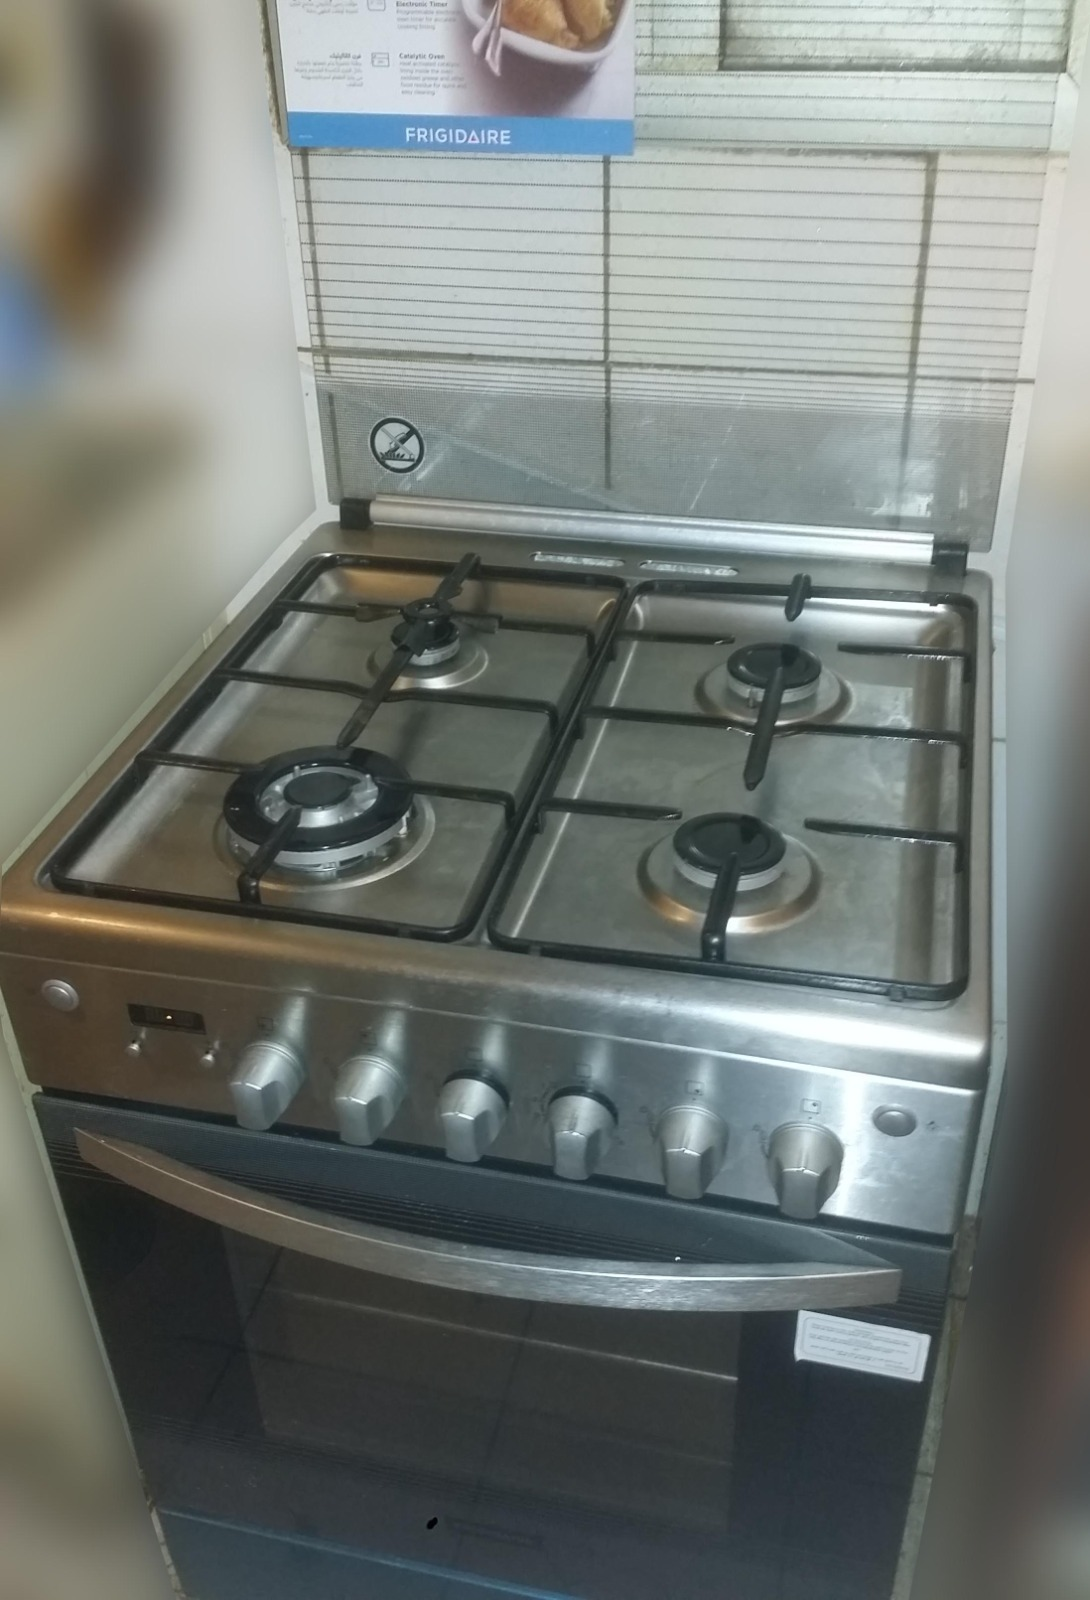 Frigidaire Oven for sale 60cm x 60cm for sale